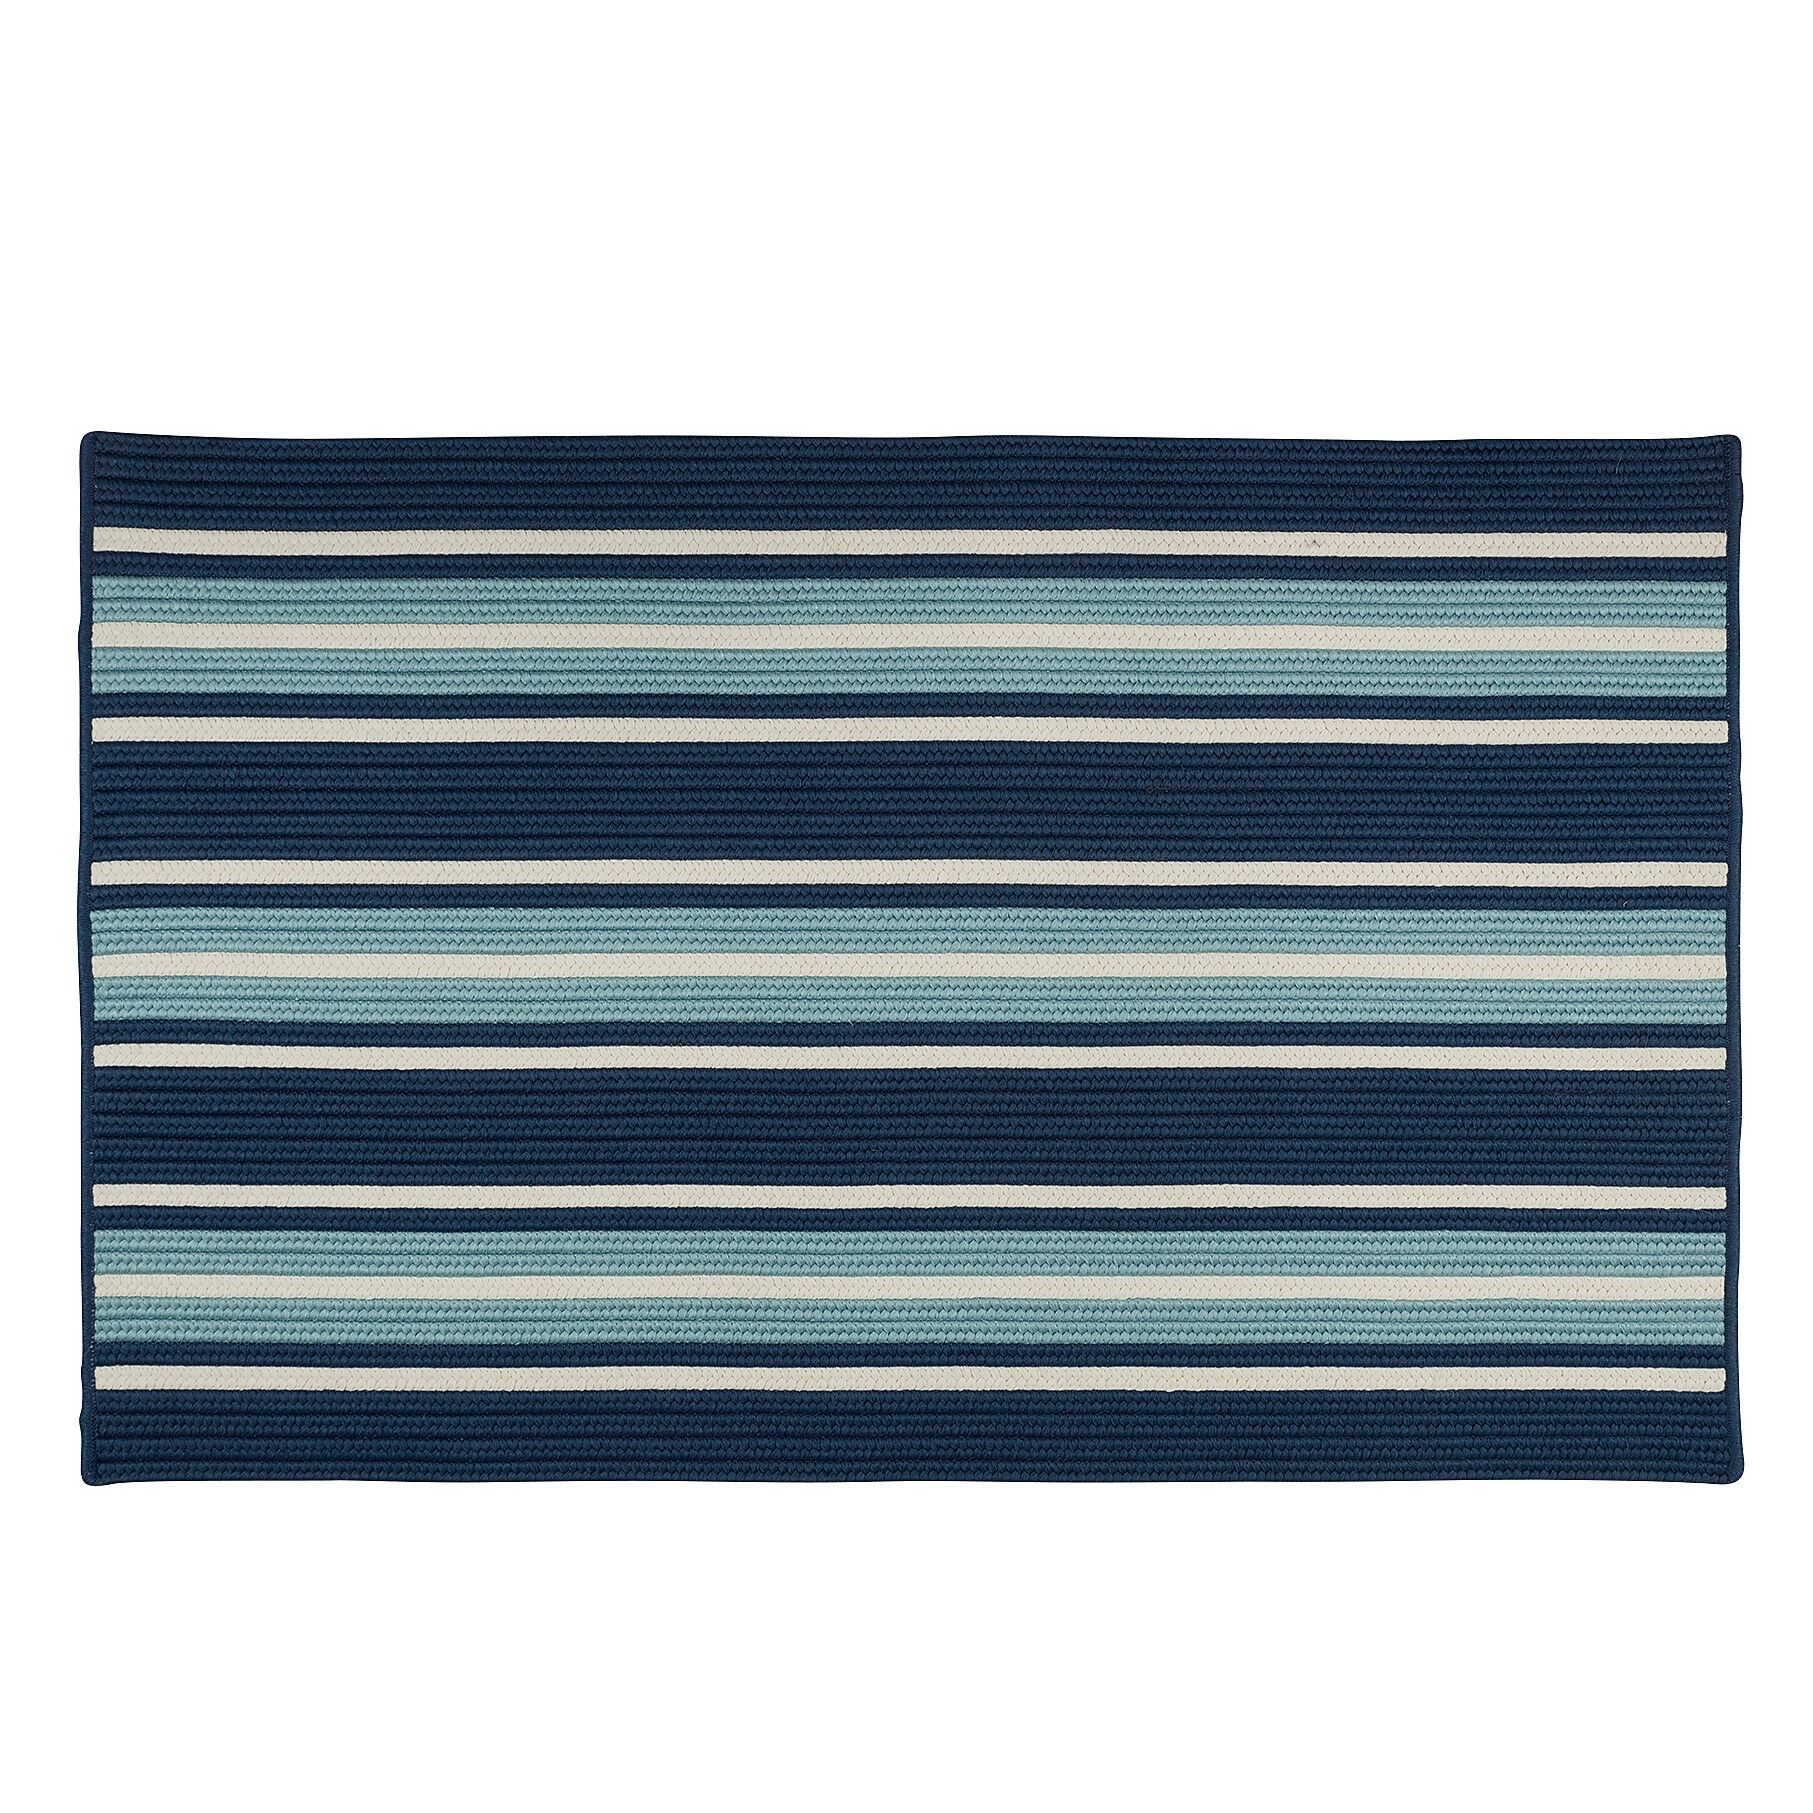 Madalynn Stripe Shoreline Hand-Braided Blue Indoor/Outdoor Area Rug Rug Size: Rectangle 8' x 10'